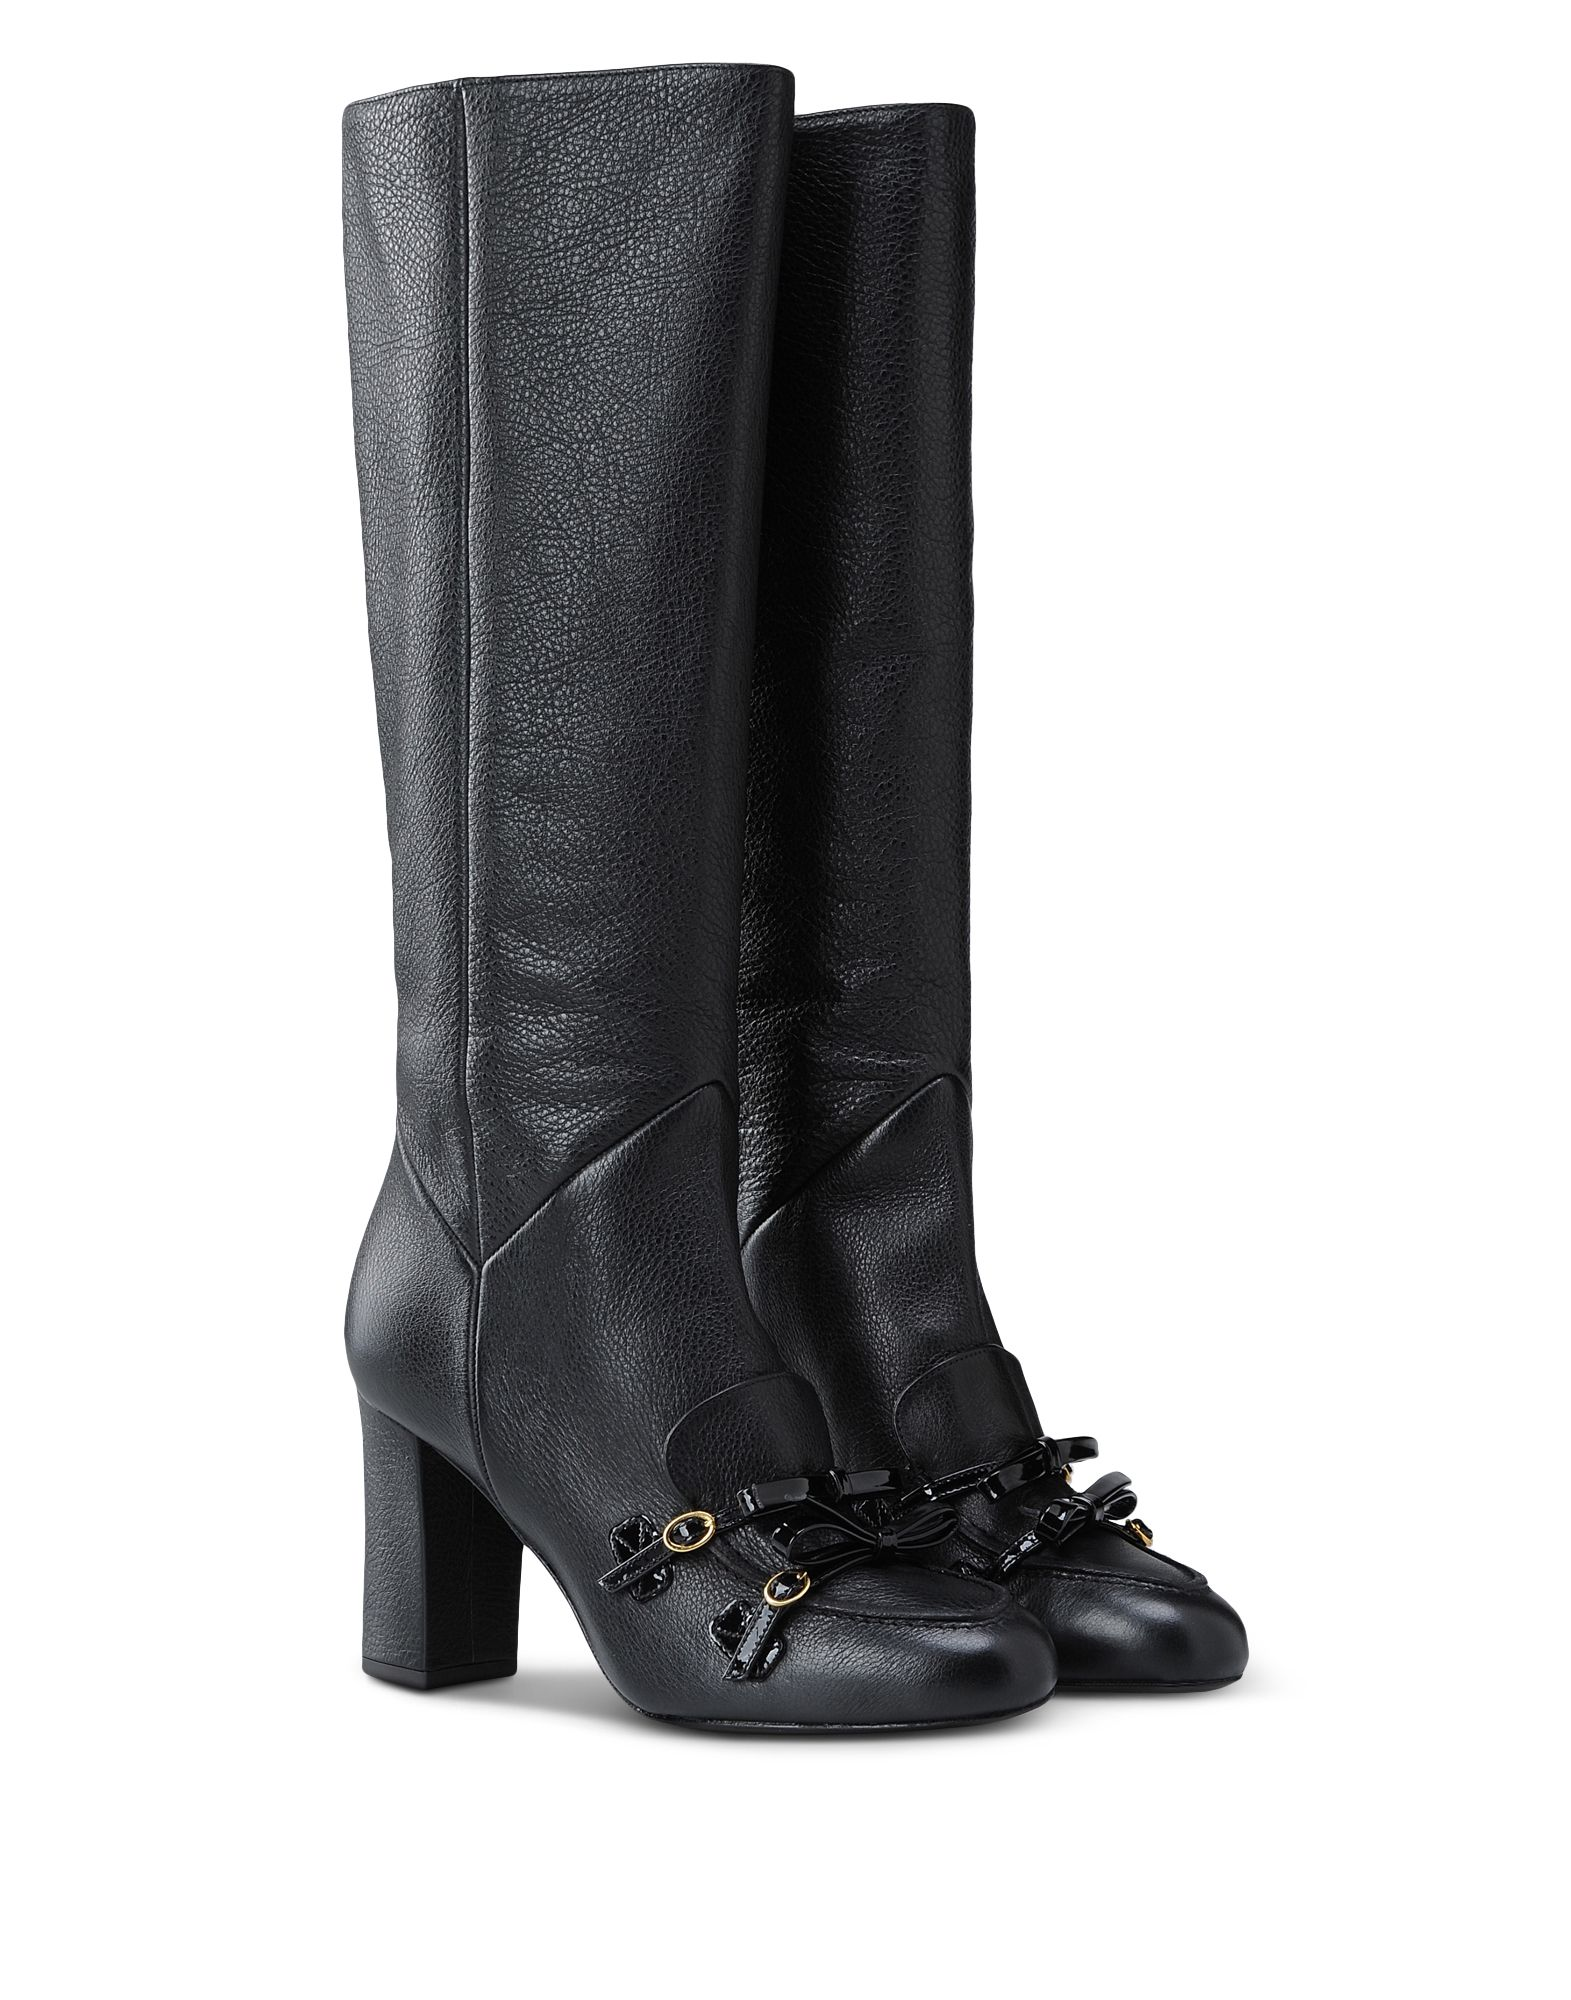 Boutique Moschino Boots - Women Boutique Moschino Boots Kingdom online on  United Kingdom Boots - 11280384PX 282b87